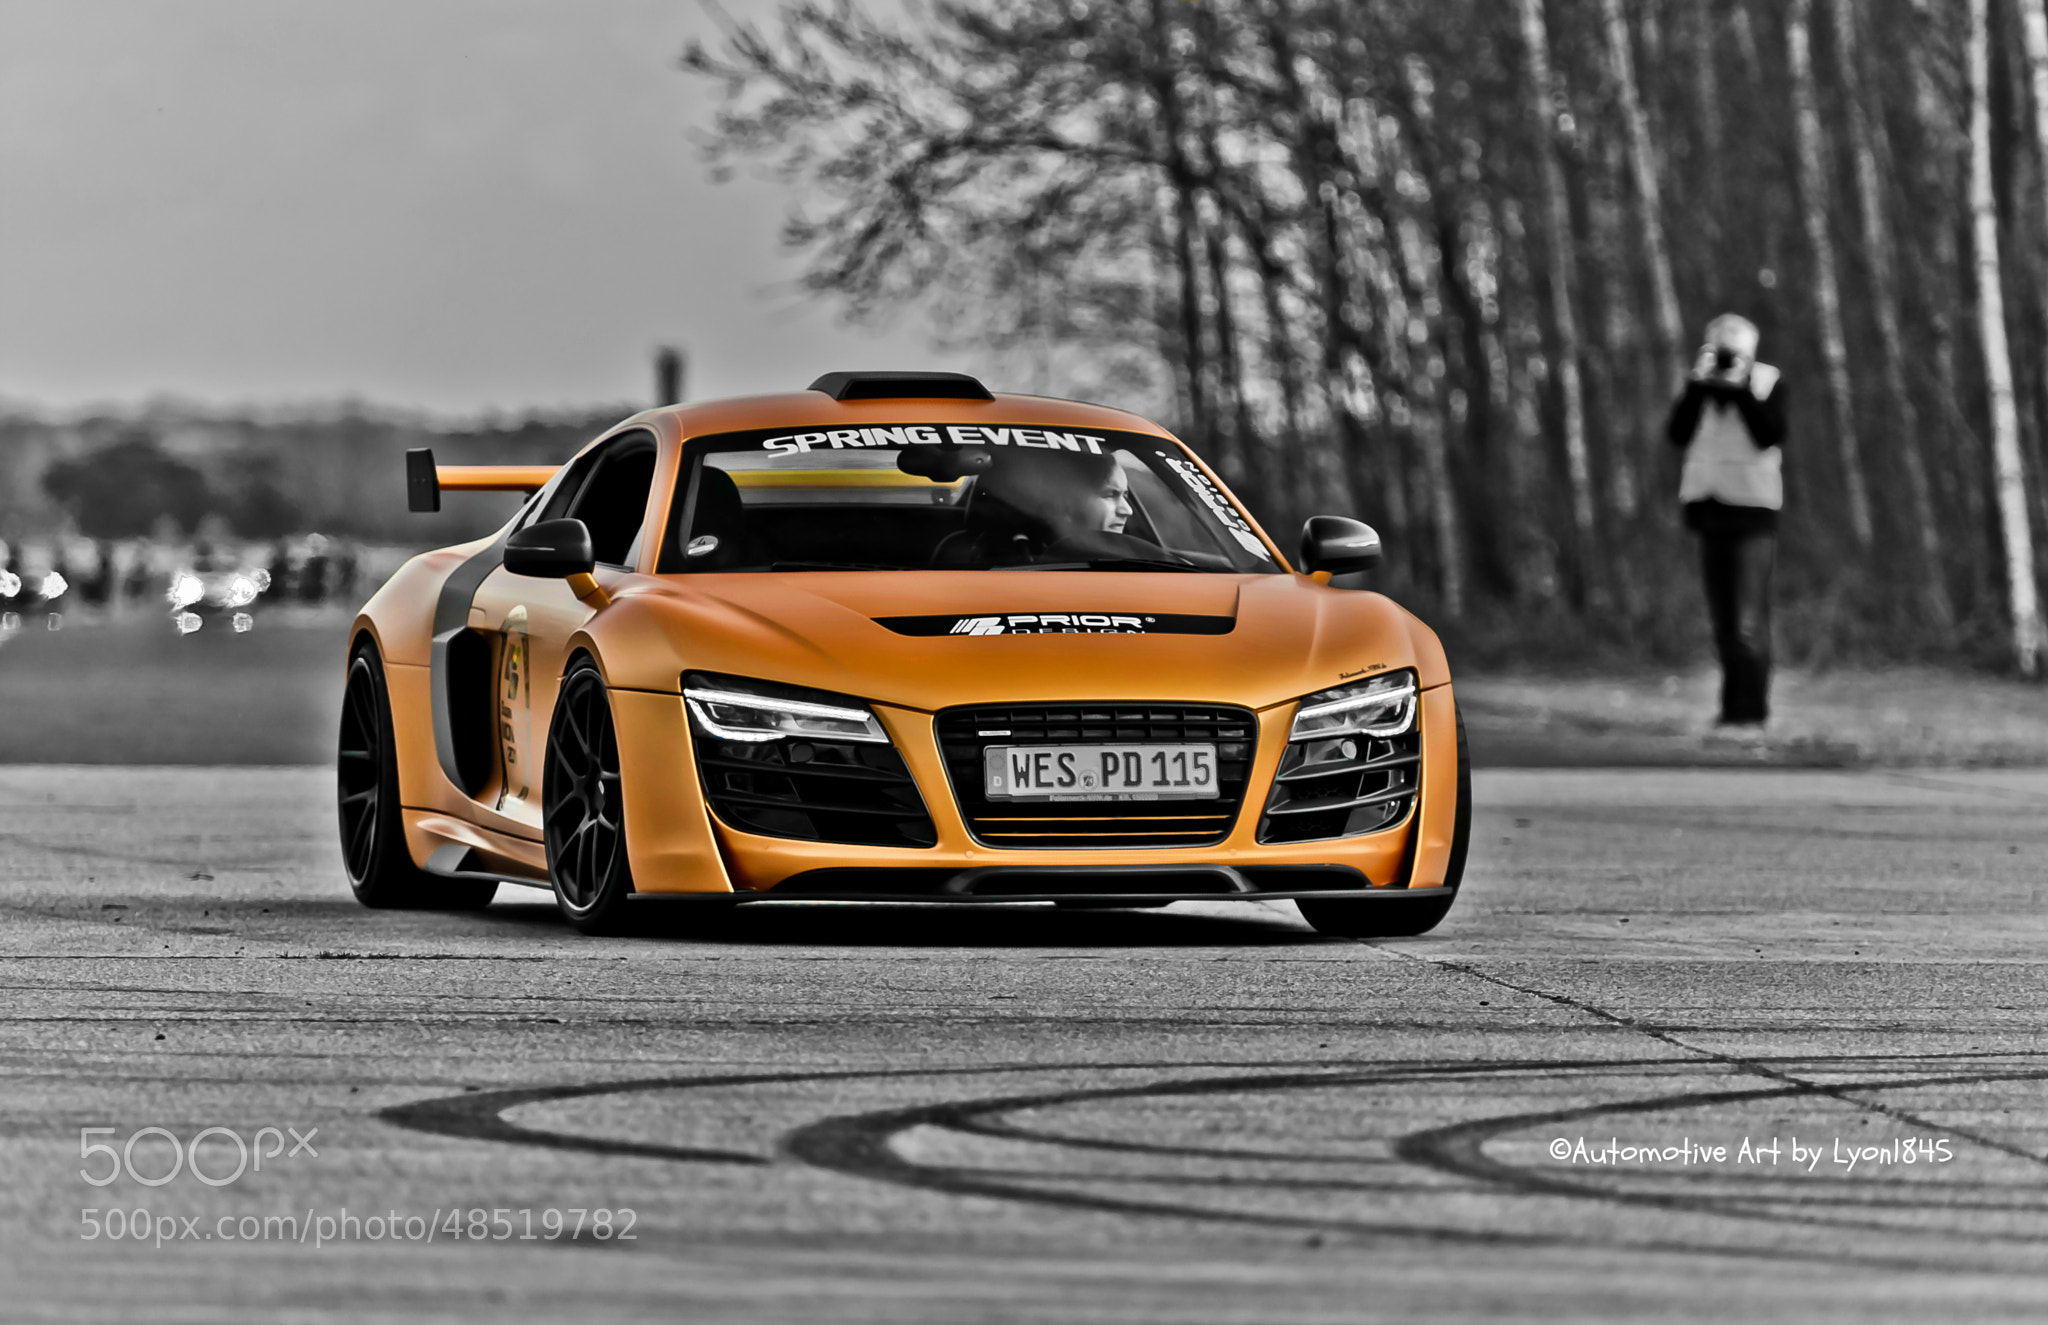 Photograph Audi R8 GT850 by lyon1845 on 500px